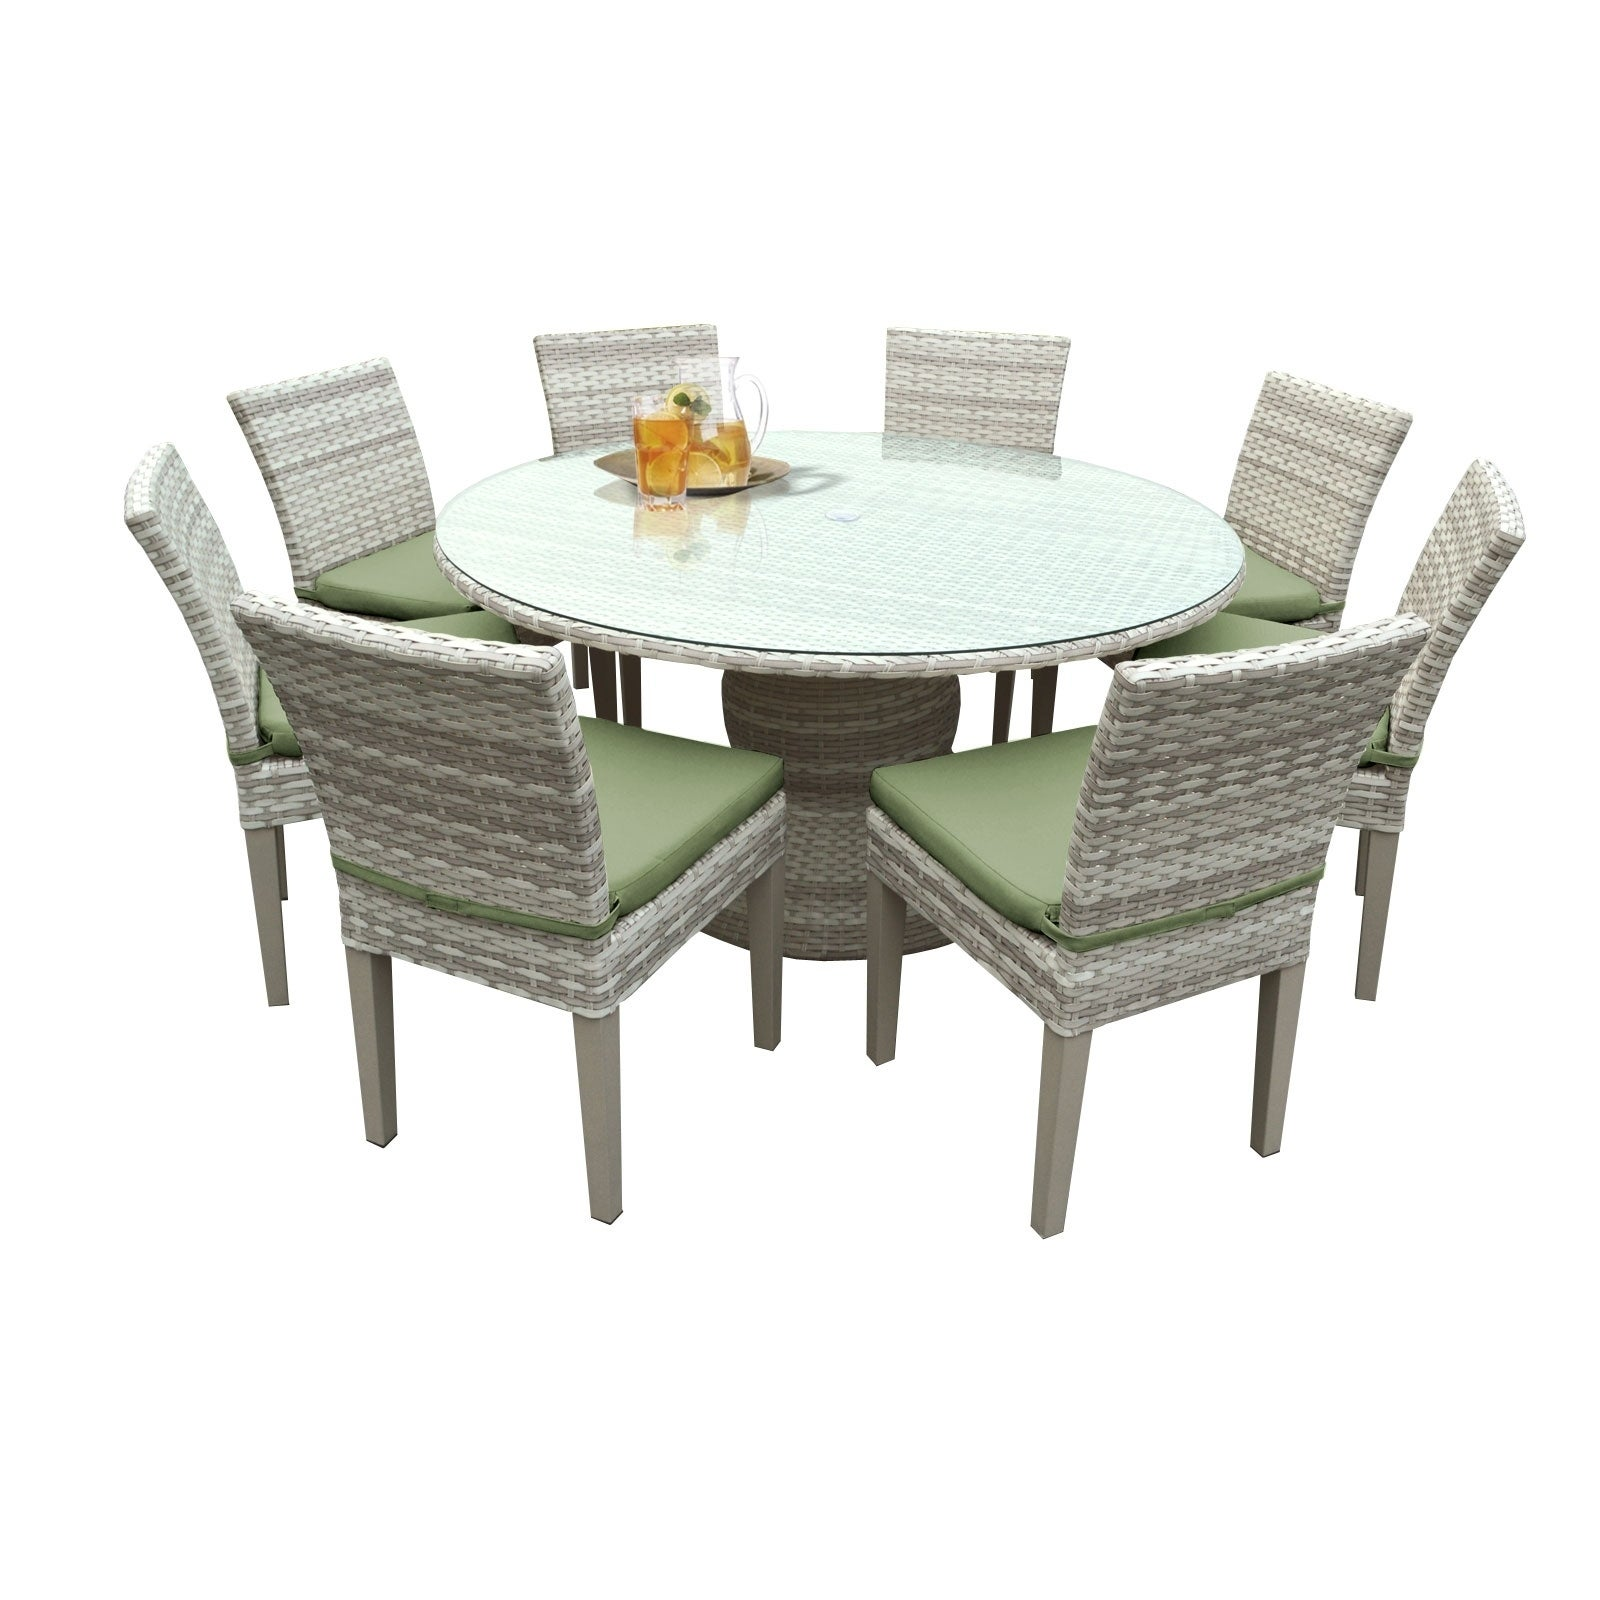 catamaran outdoor patio round wicker dining table and 8 side chairs with seat ebay. Black Bedroom Furniture Sets. Home Design Ideas